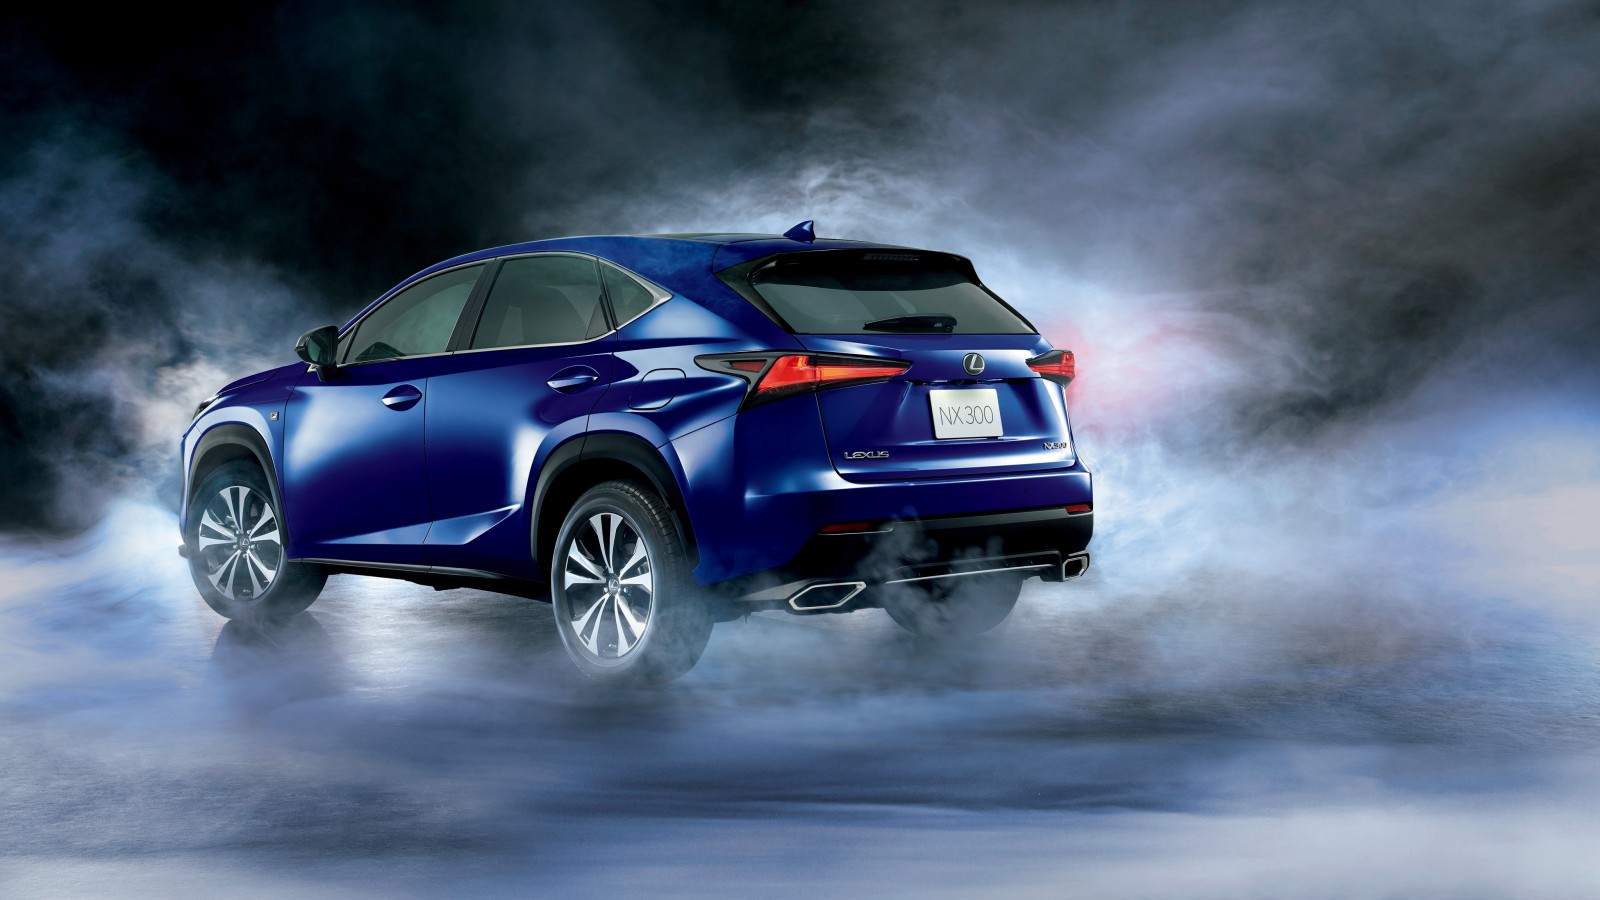 2018 Lexus Nx 300 F Sport 3 Wallpaper Hd Car Wallpapers